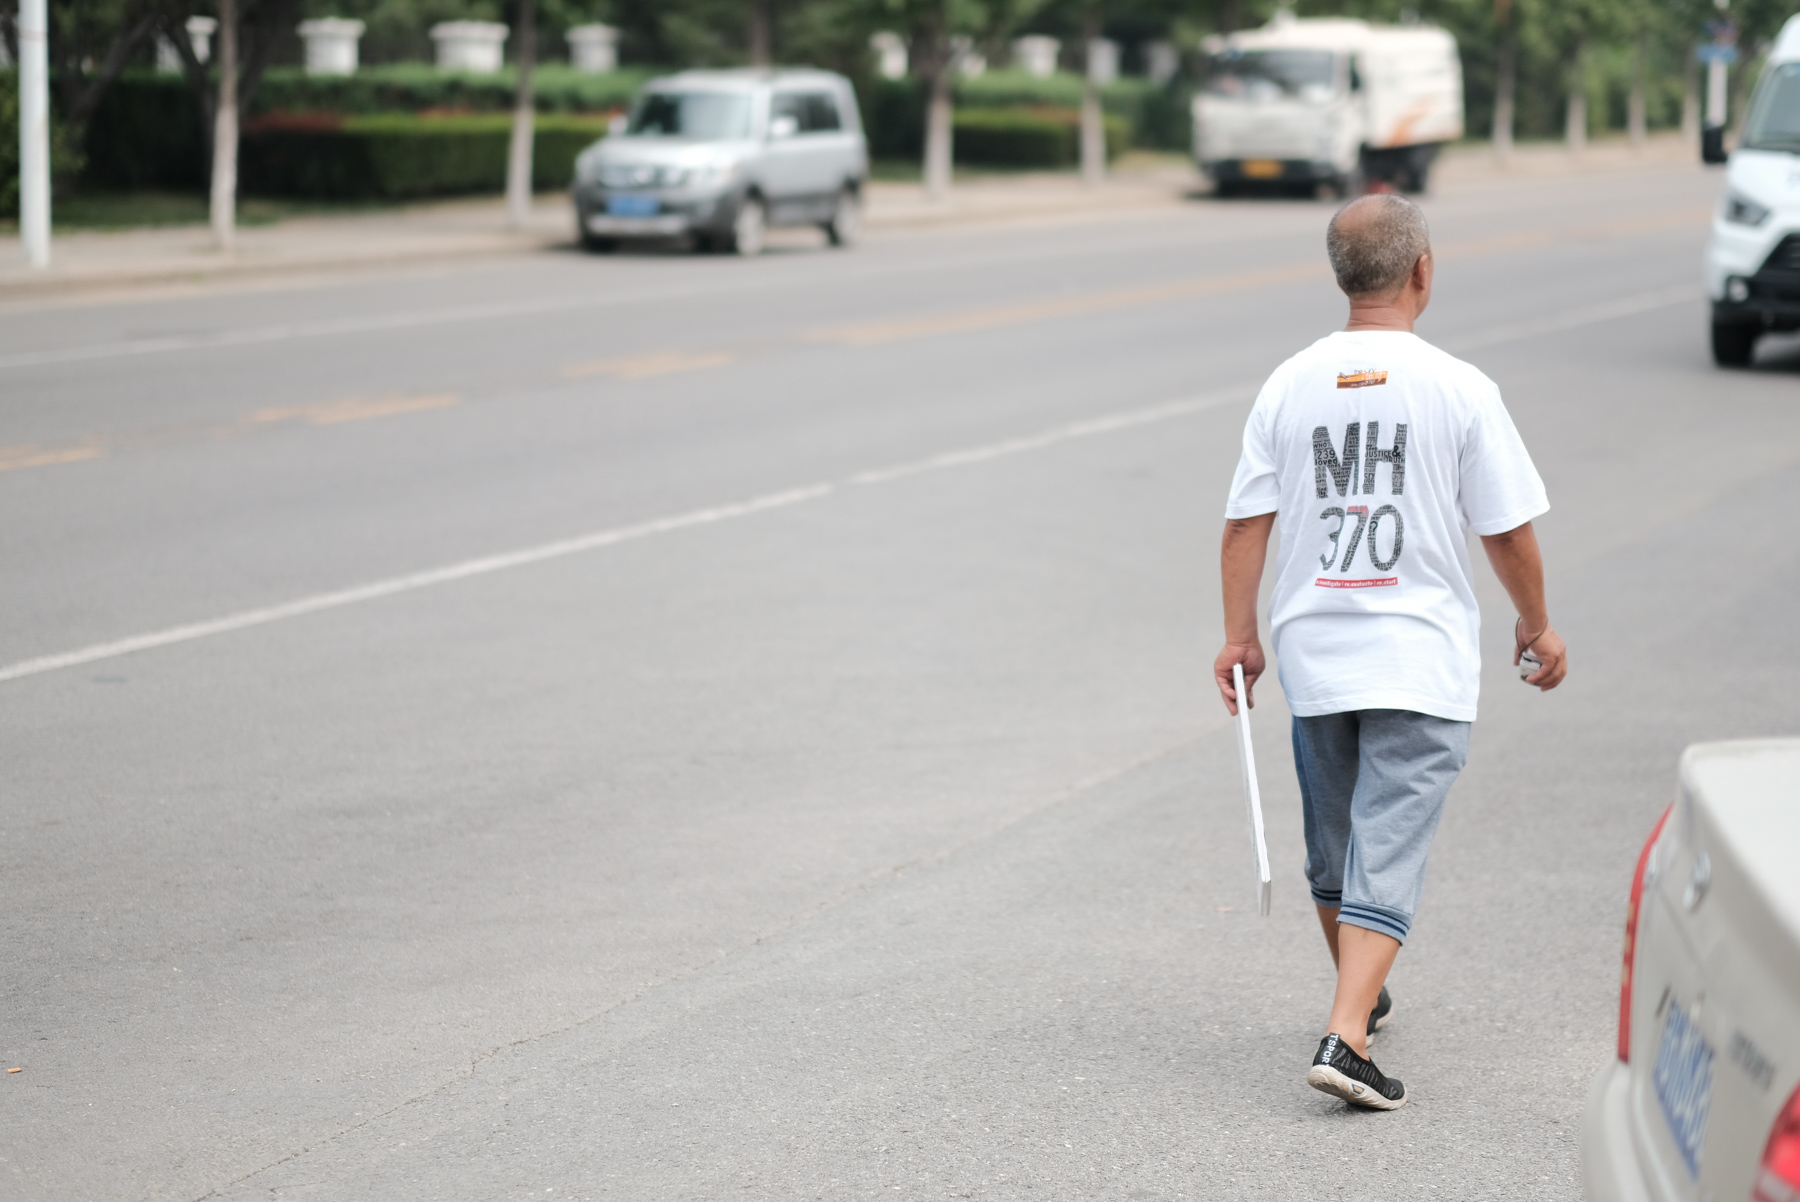 A relative of a passenger on the missing Malaysia Airlines Flight MH370 walks on the street before a press conference held by the Malaysian investigation team, in Beijing, August 3. In May, the last search effort for the flight that went missing four years ago ended without any new findings. (ImagineChina)